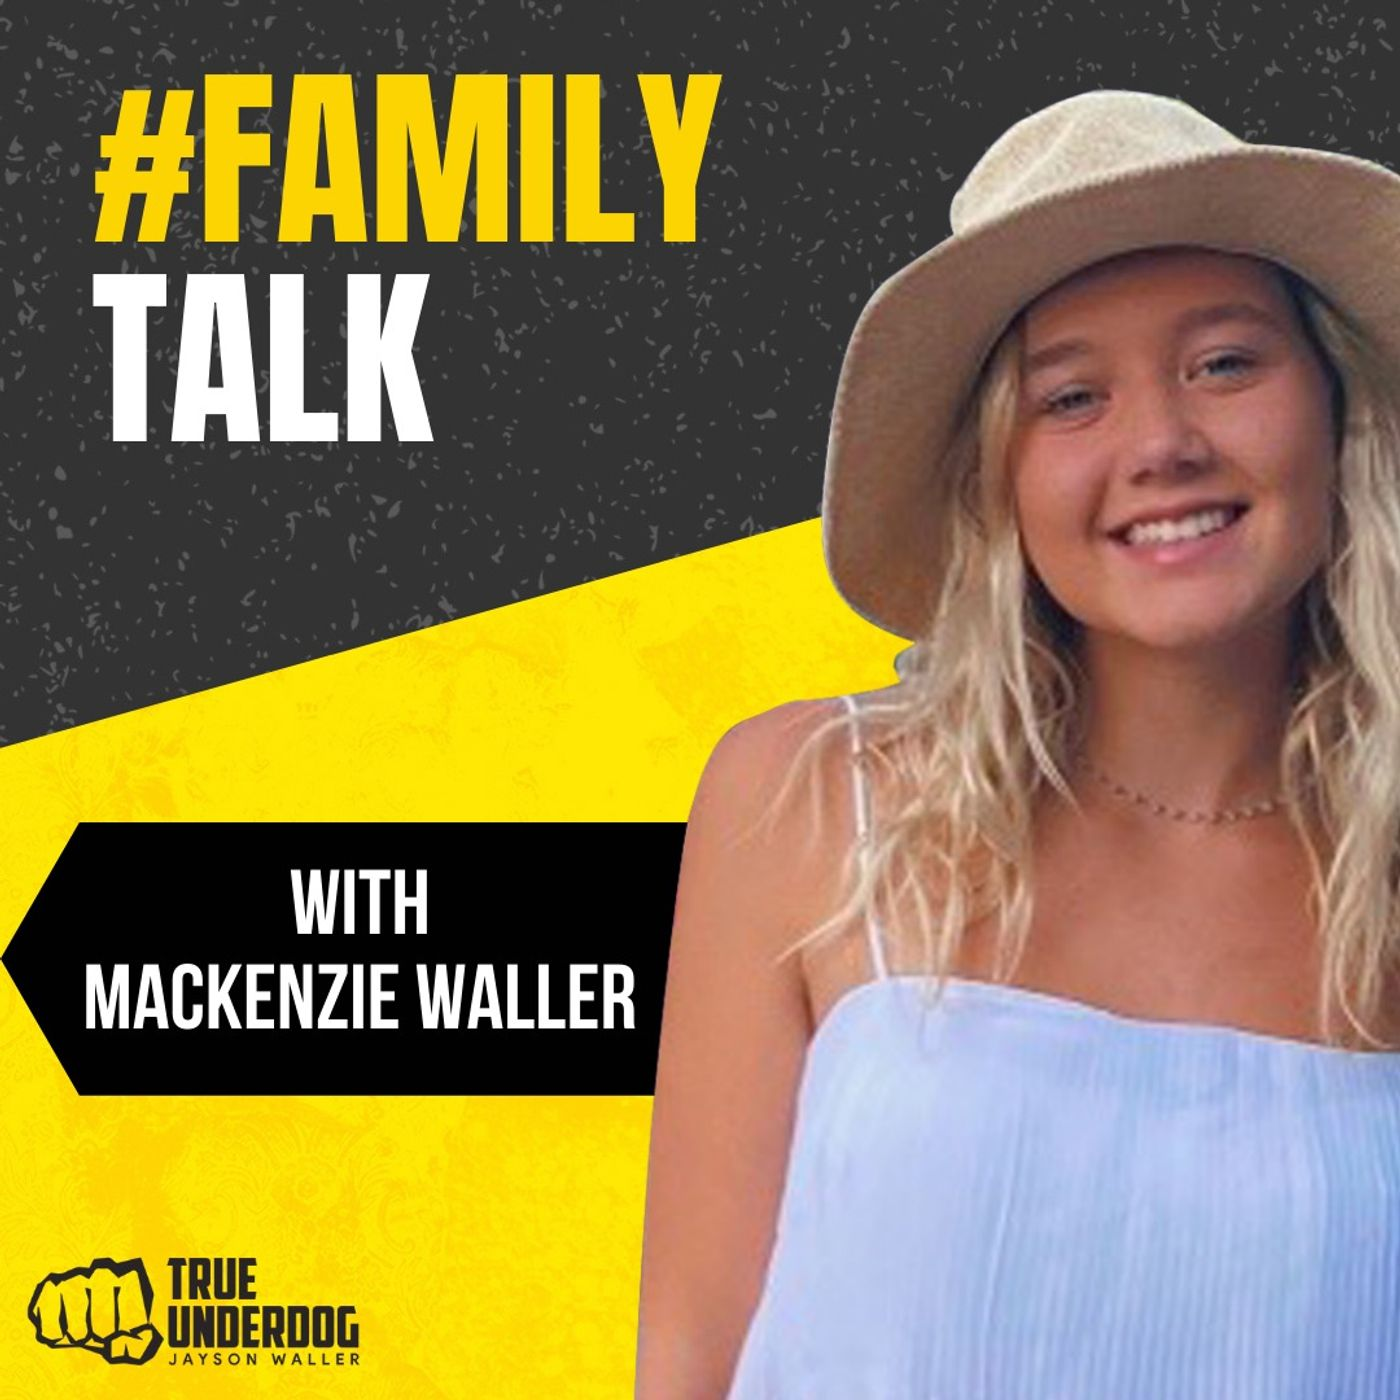 #FamilyTalk with Mackenzie Waller